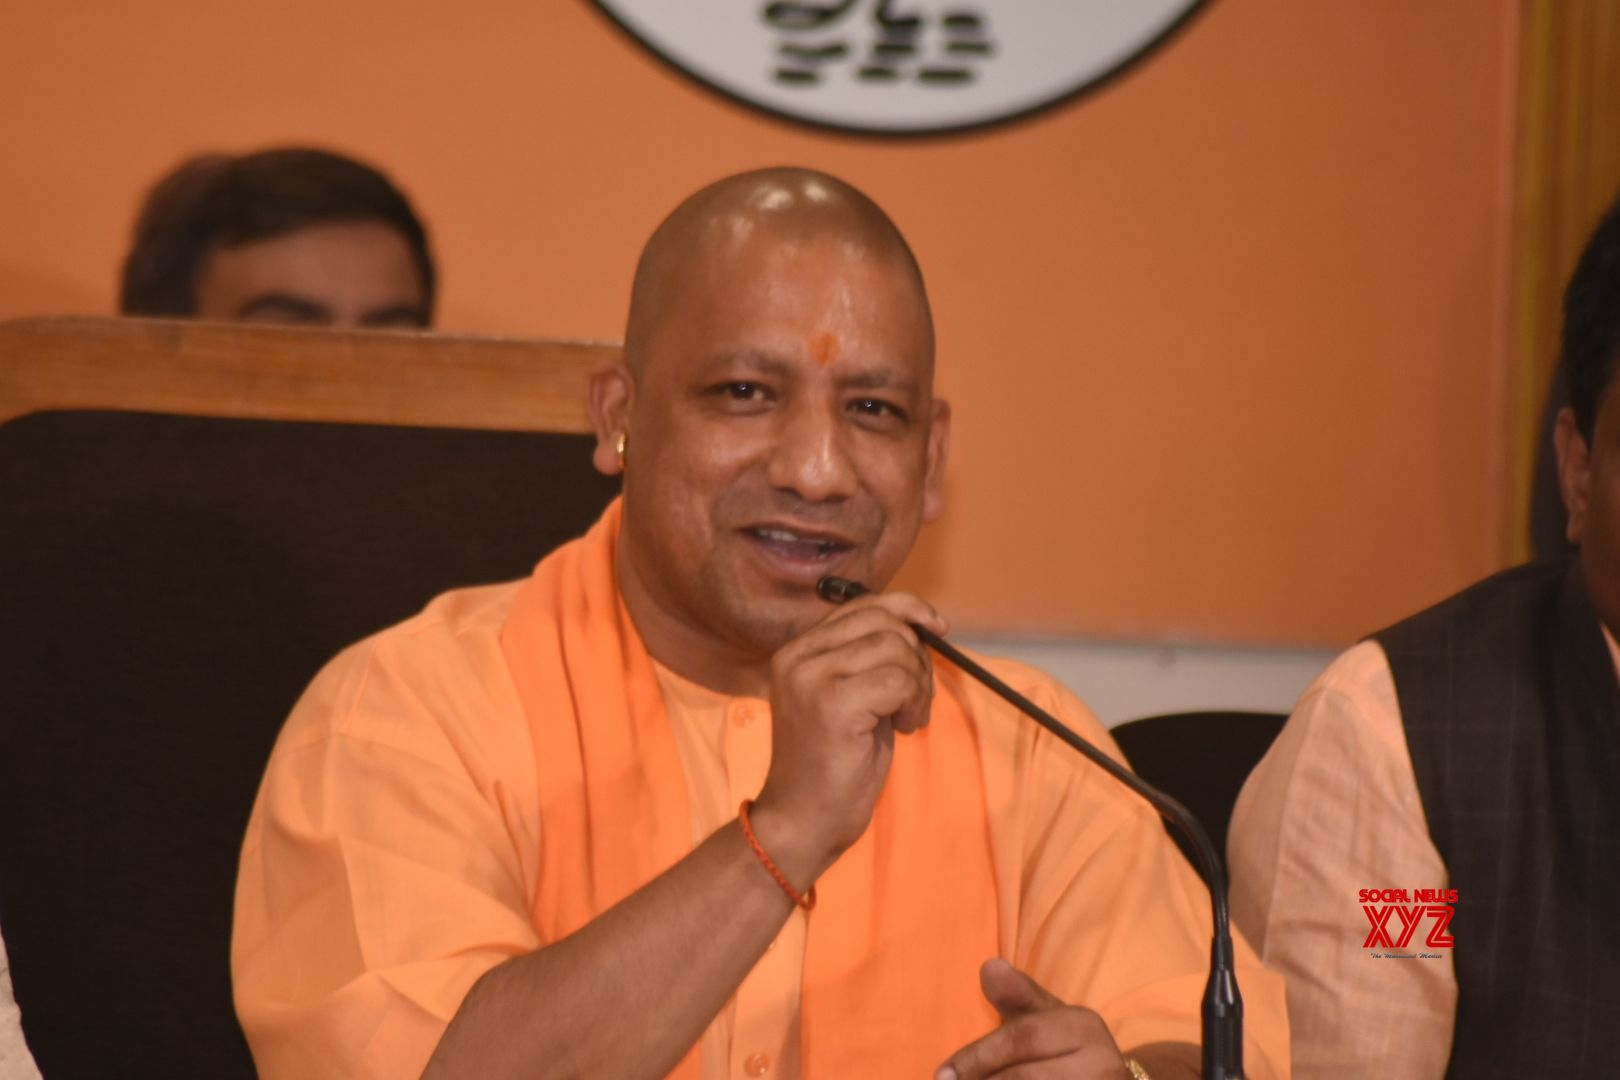 Yogi's office in Lucknow to be made bulletproof